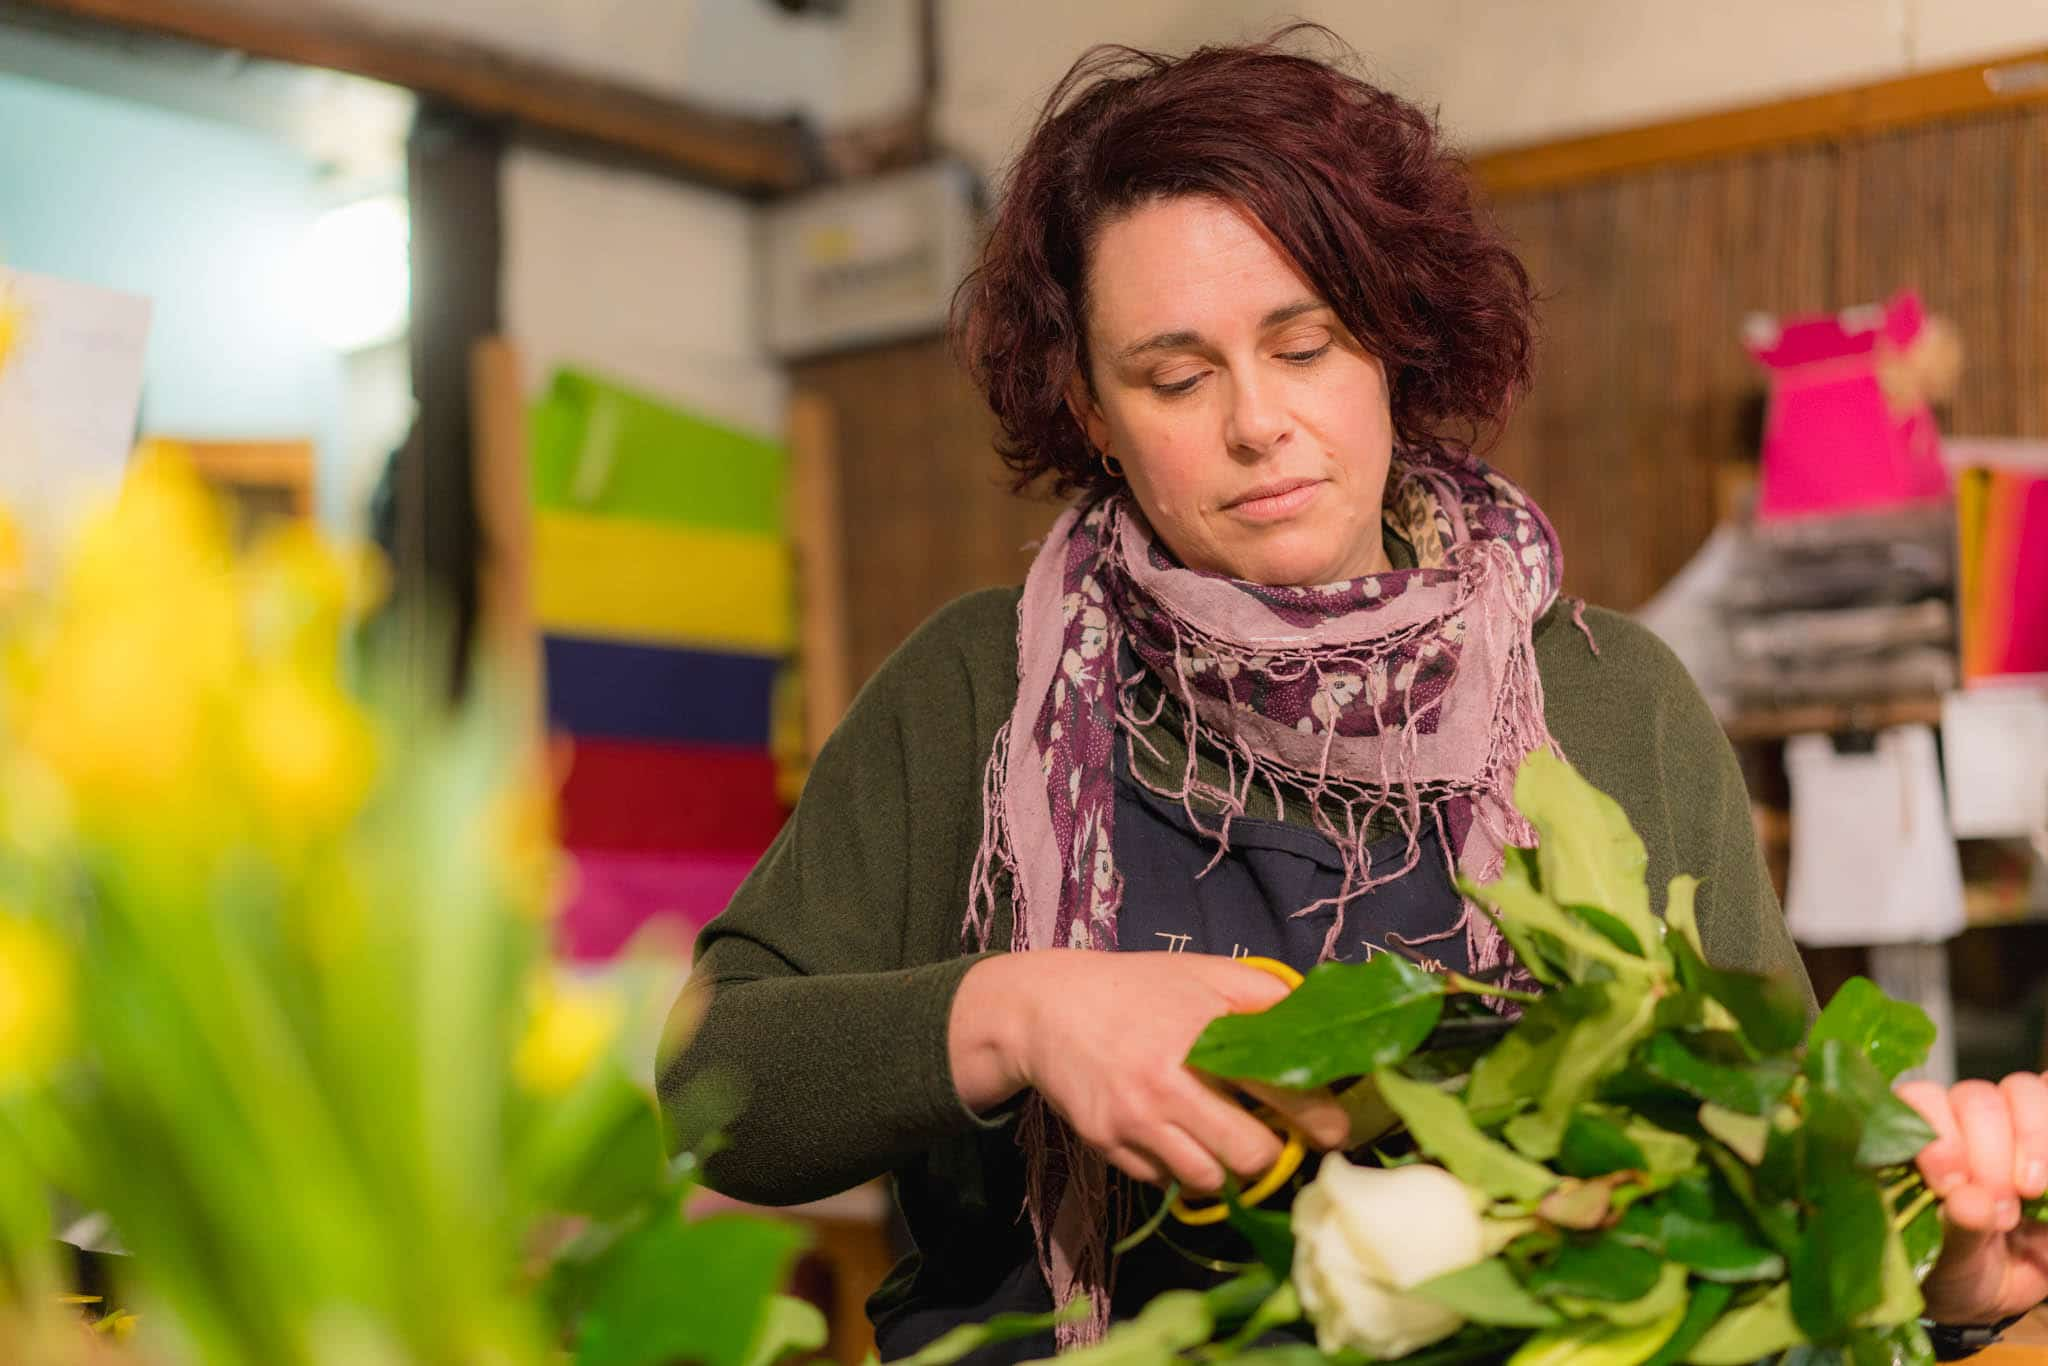 Chamber of Commerce membership business, woman working in florist